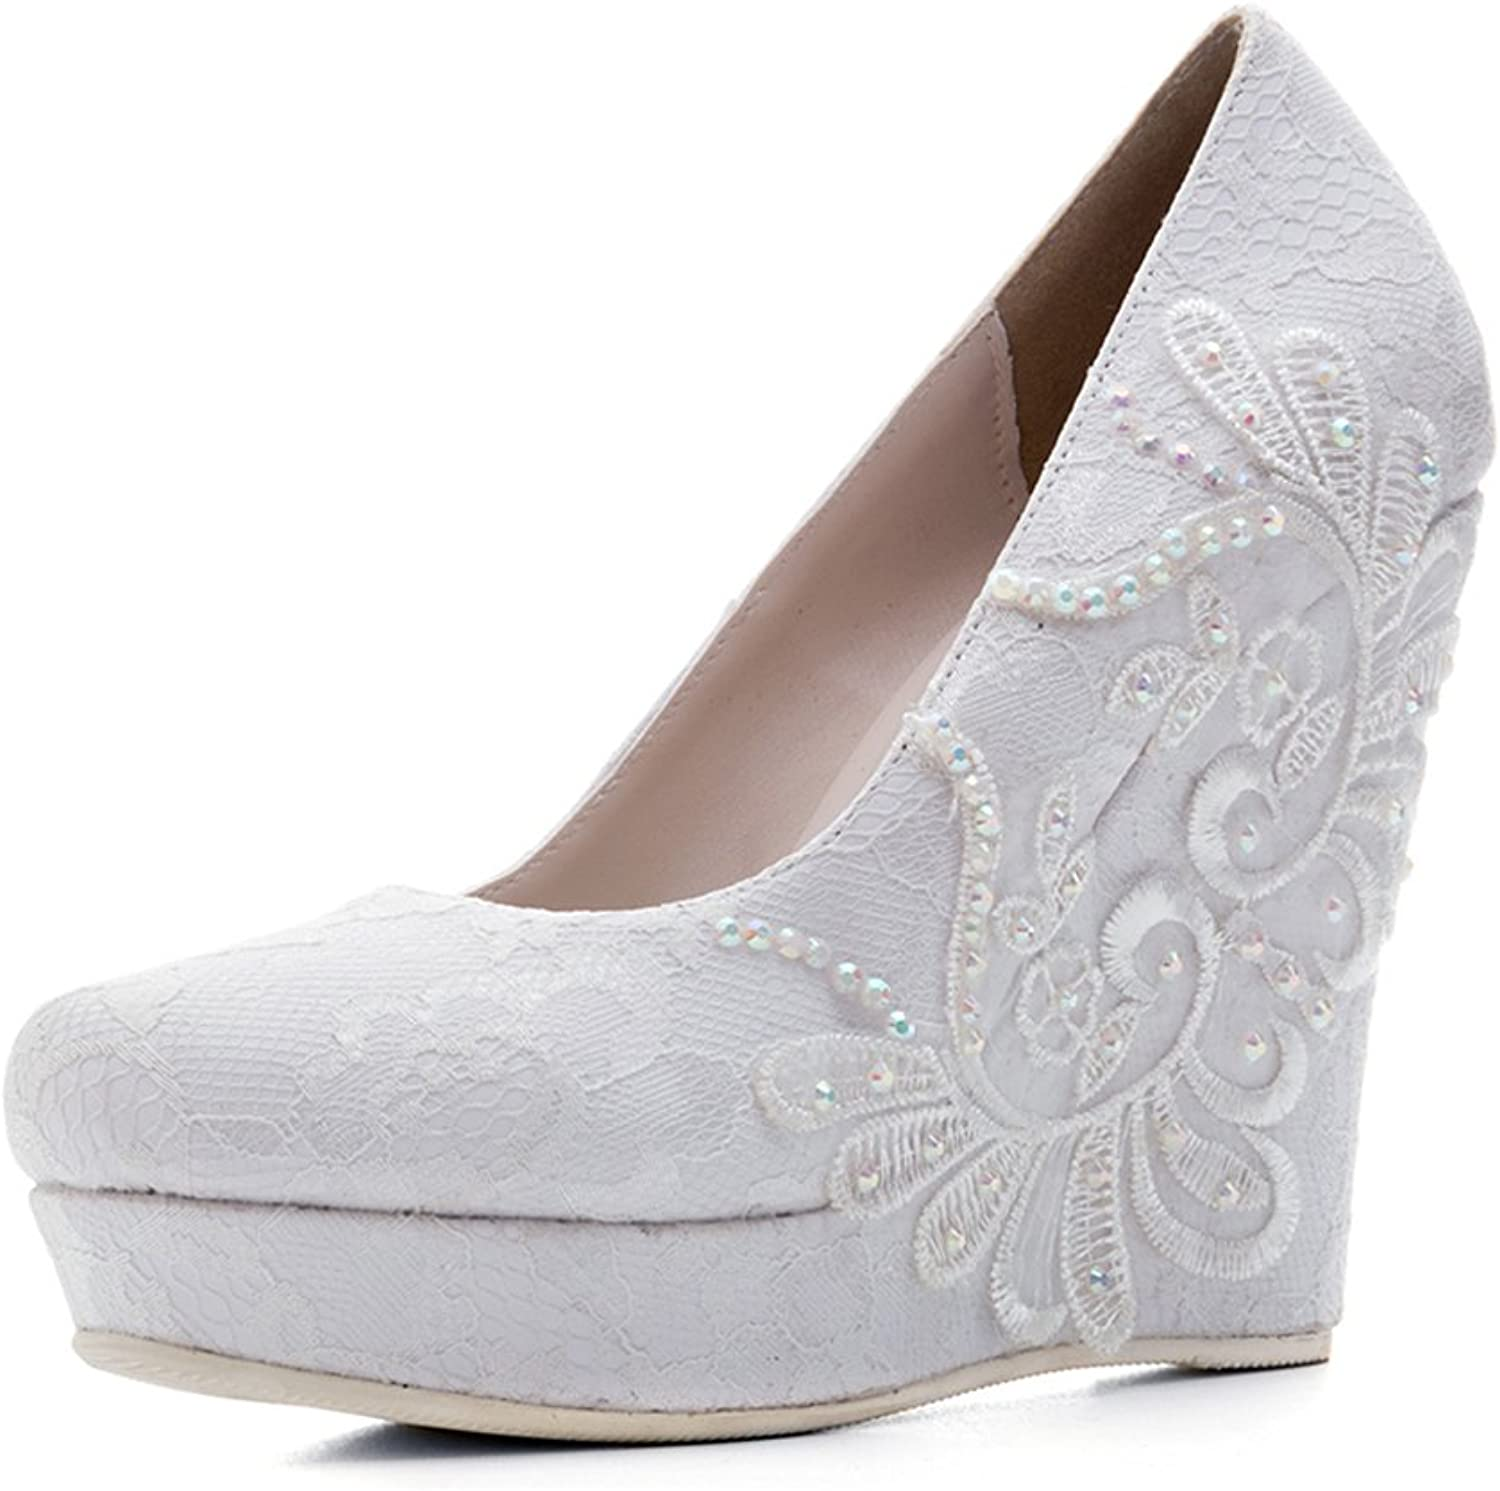 Themost Fancy Womens White Lace Platform High Heel Wedge Pumps Bride Wedding Party shoes